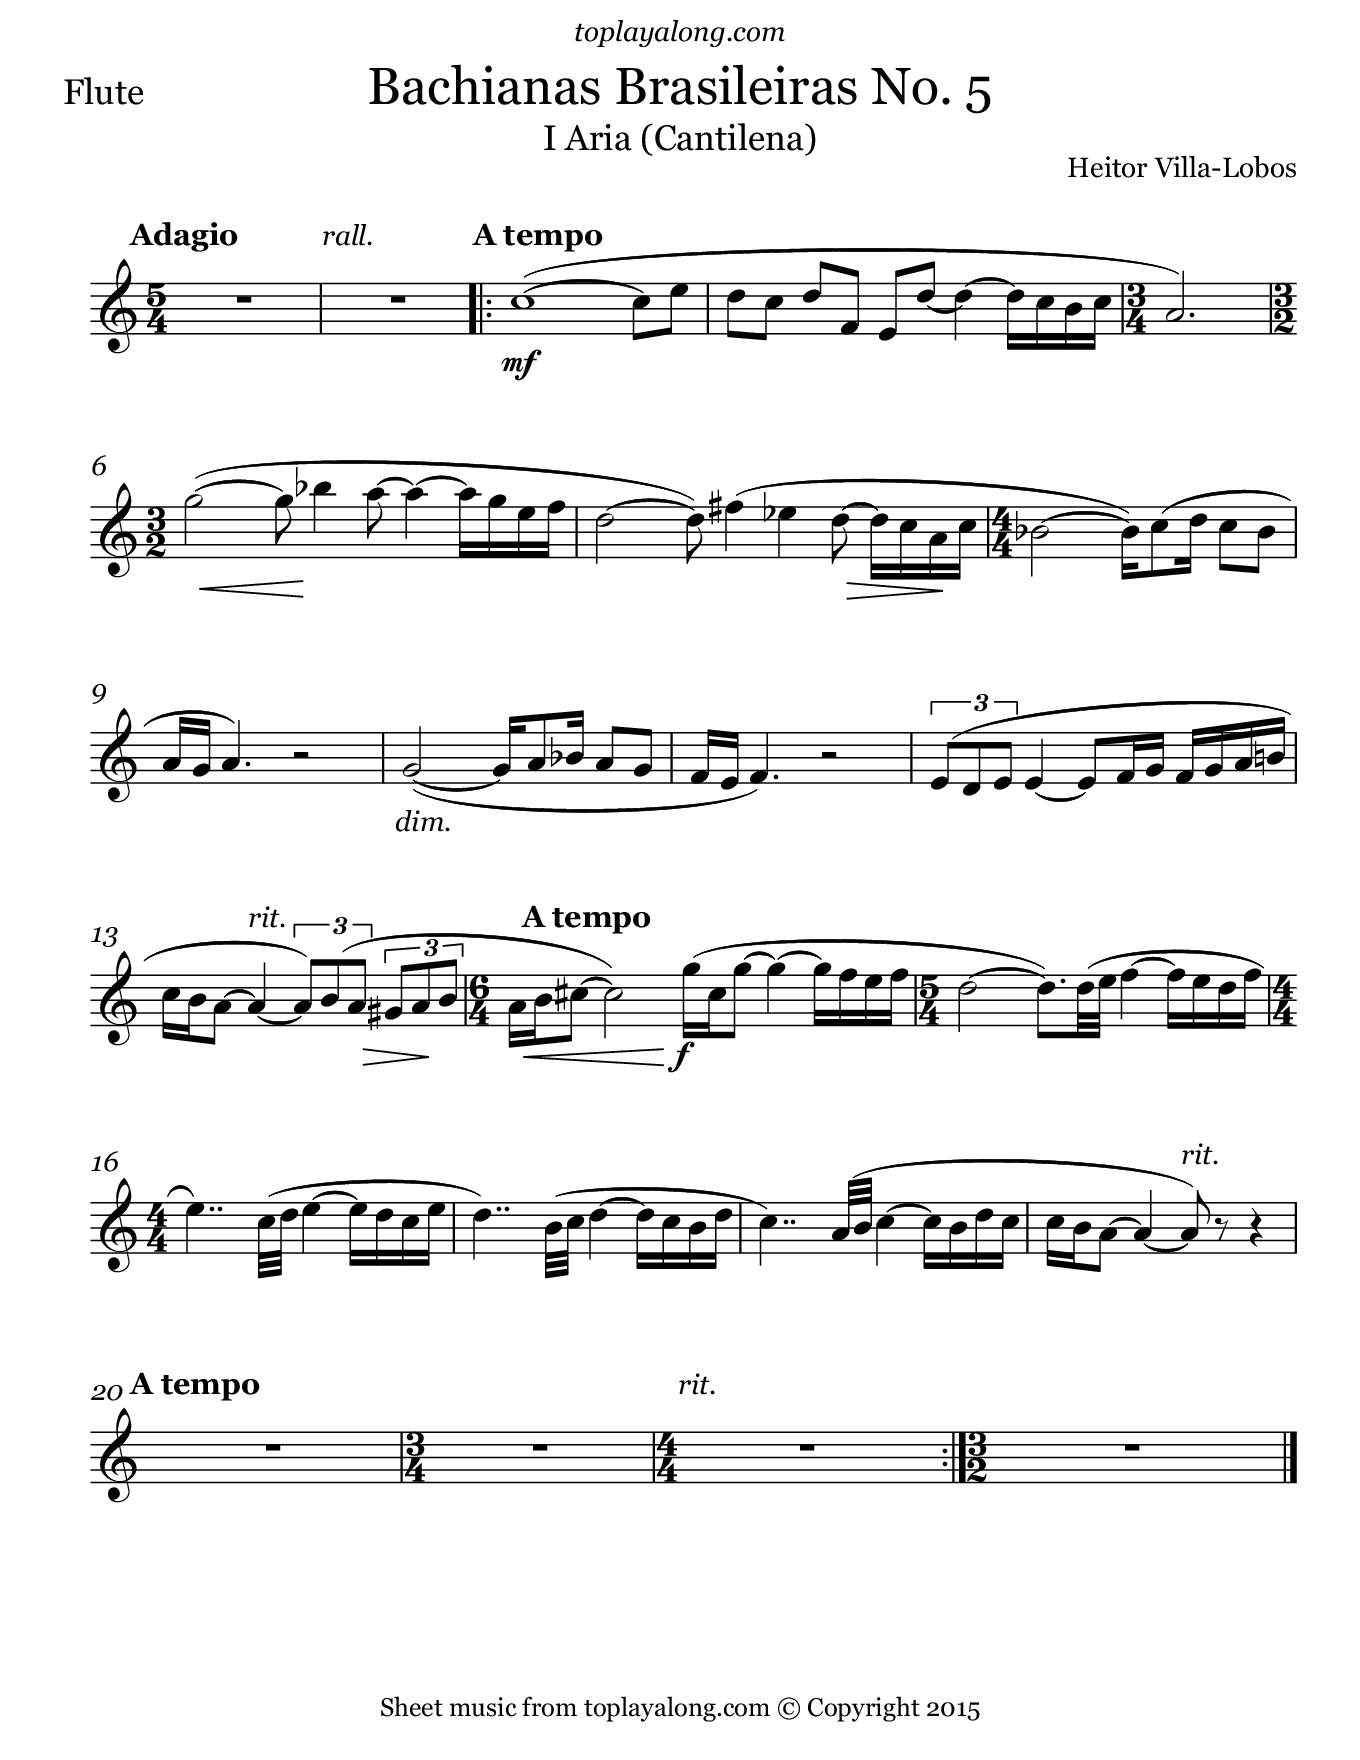 Bachianas Brasileiras No.5 by Villa-Lobos. Sheet music for Flute, page 1.